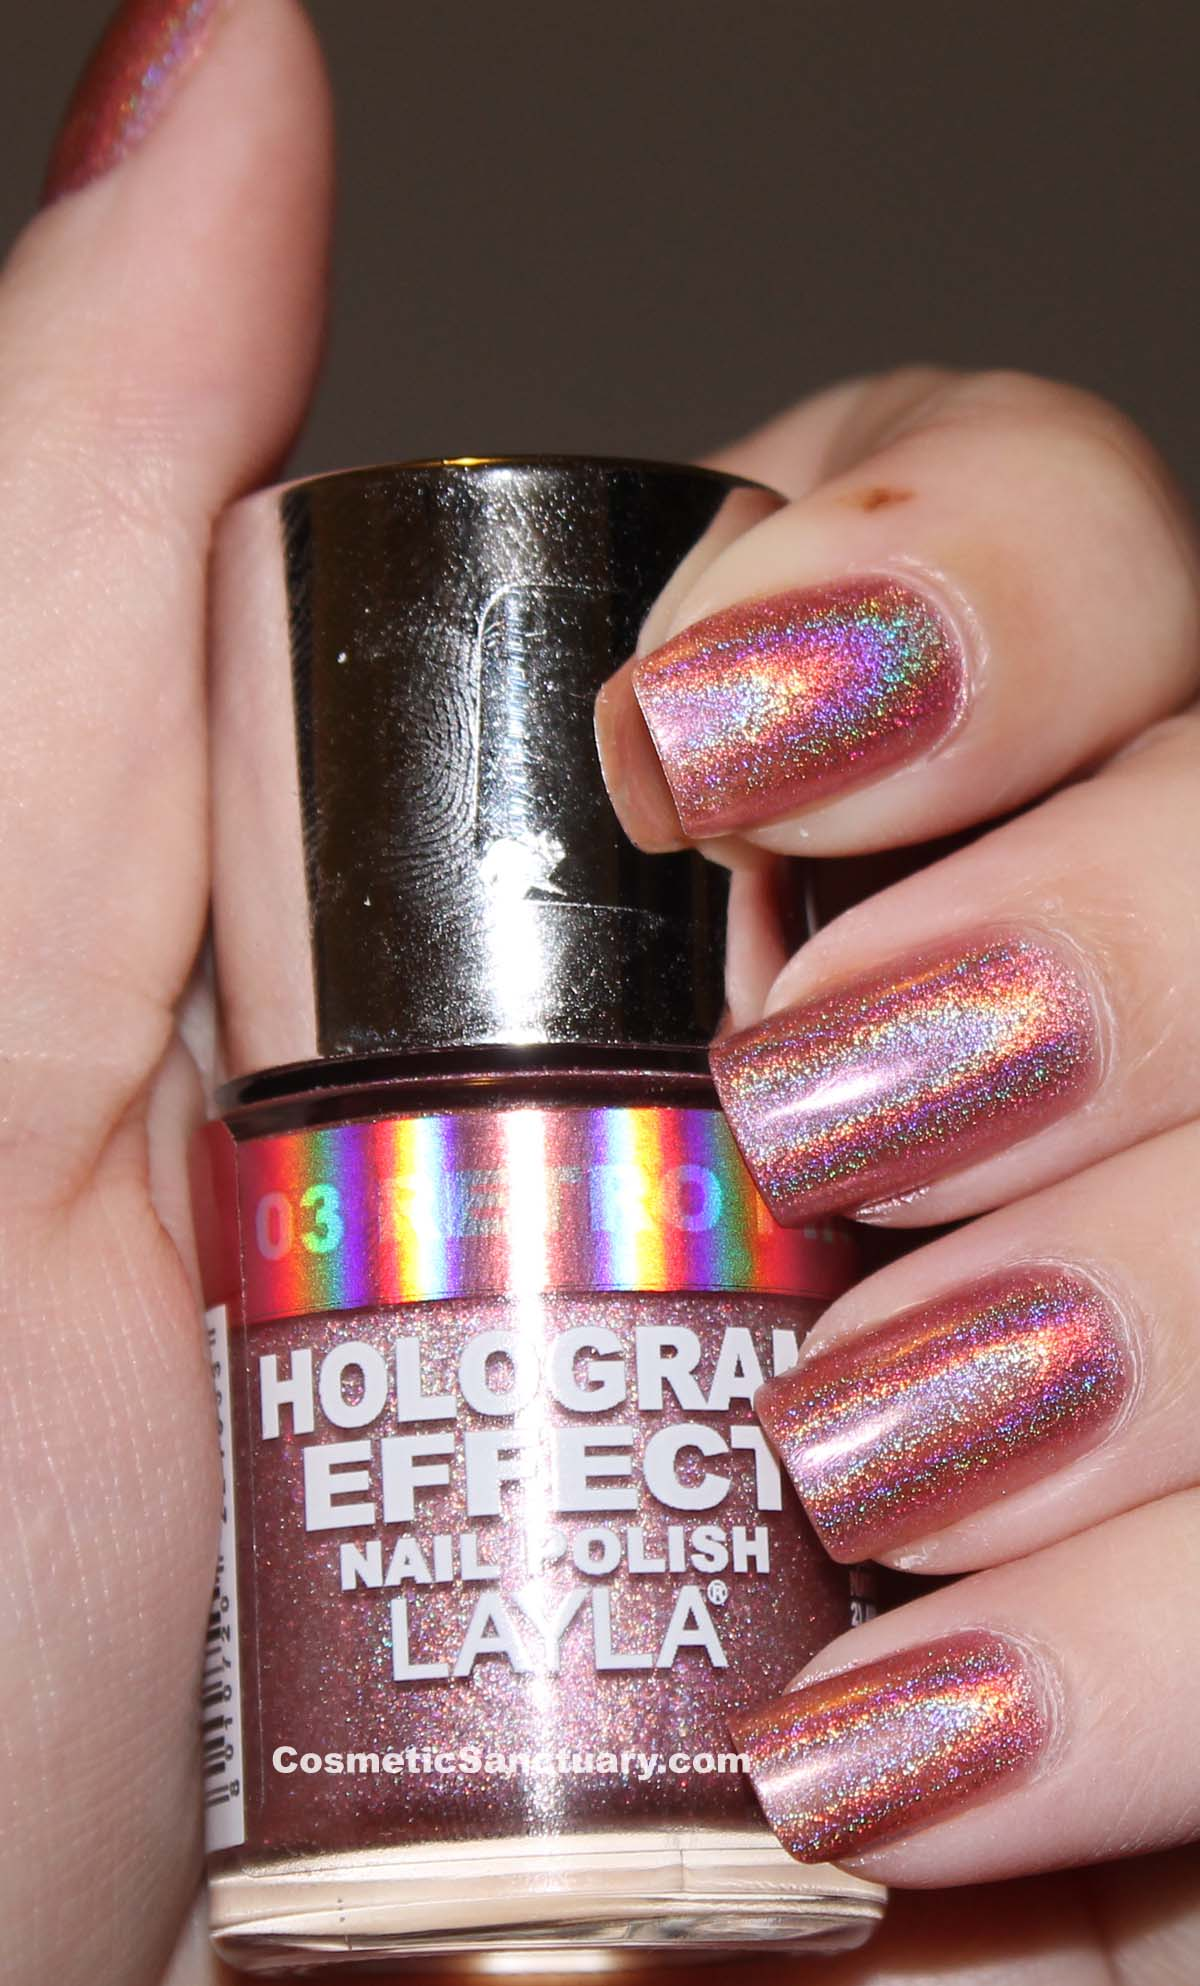 Layla Hologram Effect Nail Polish Swatches and Review